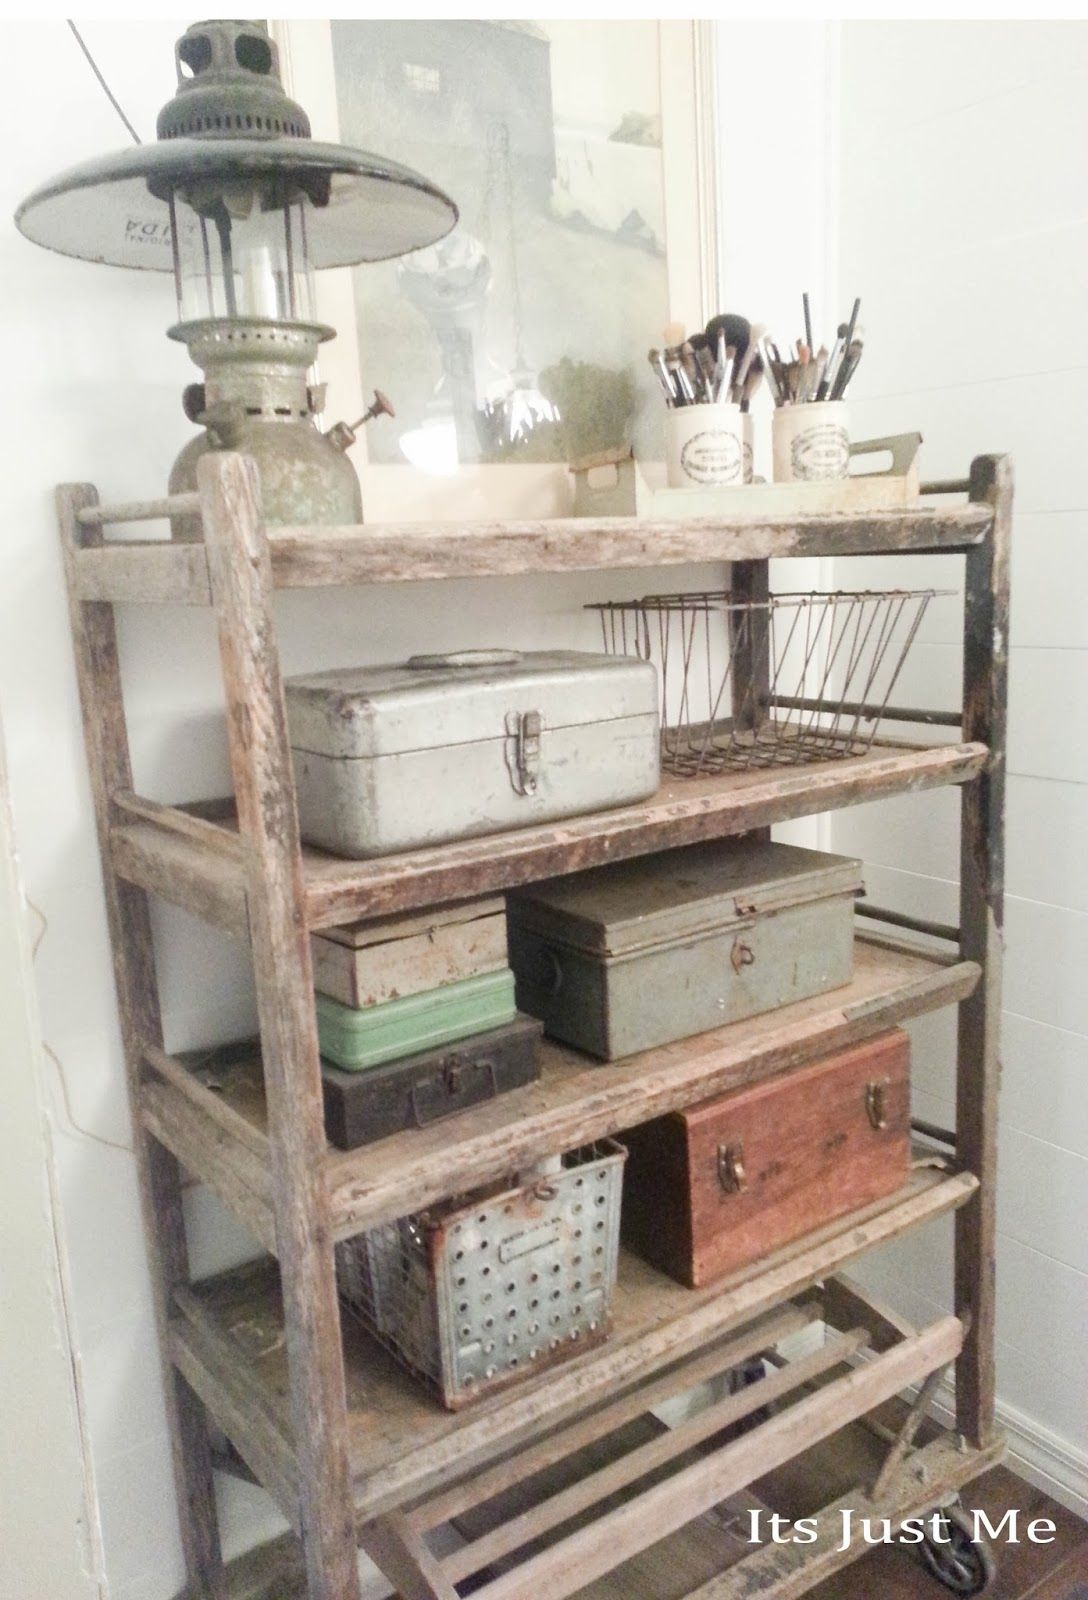 Antique Shoe Rack Filled With Vintage Toolboxes And Baskets Holds - Industrial bathroom supplies